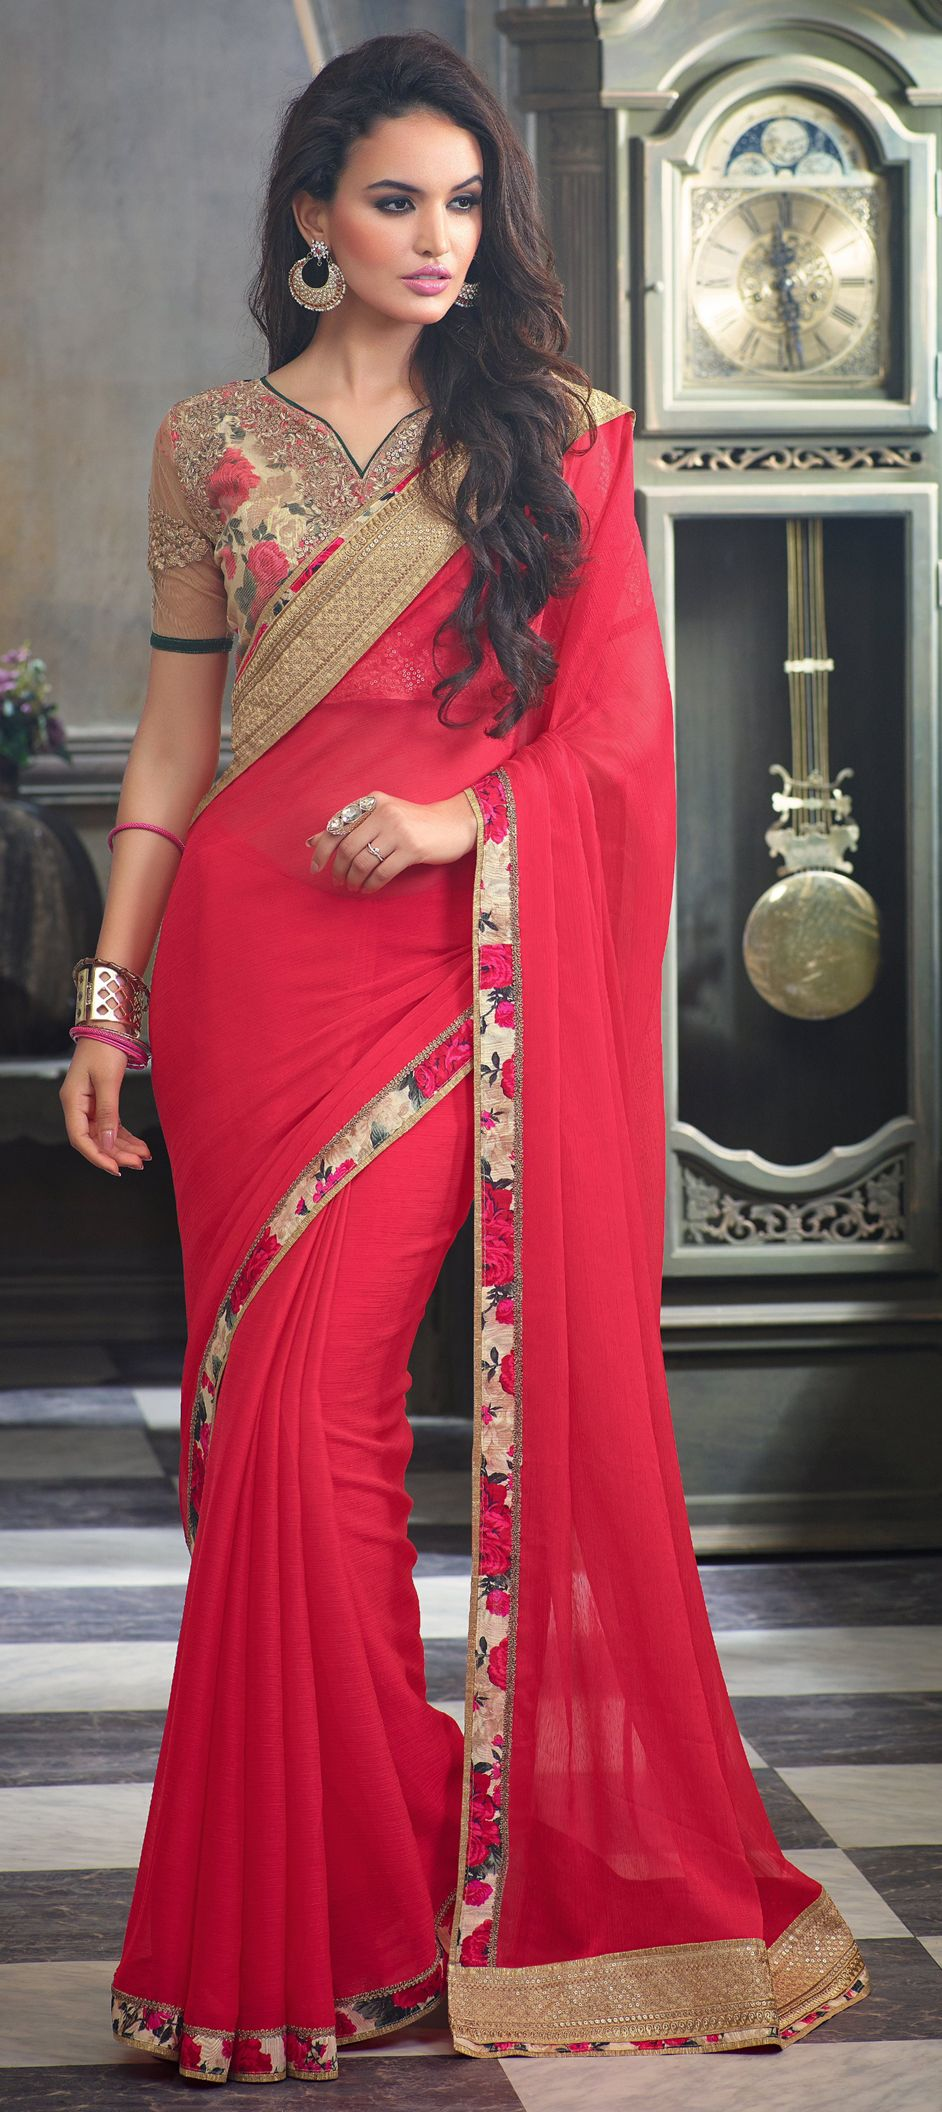 Saree blouse design for chiffon saree  red and maroon color family embroidered sarees party wear